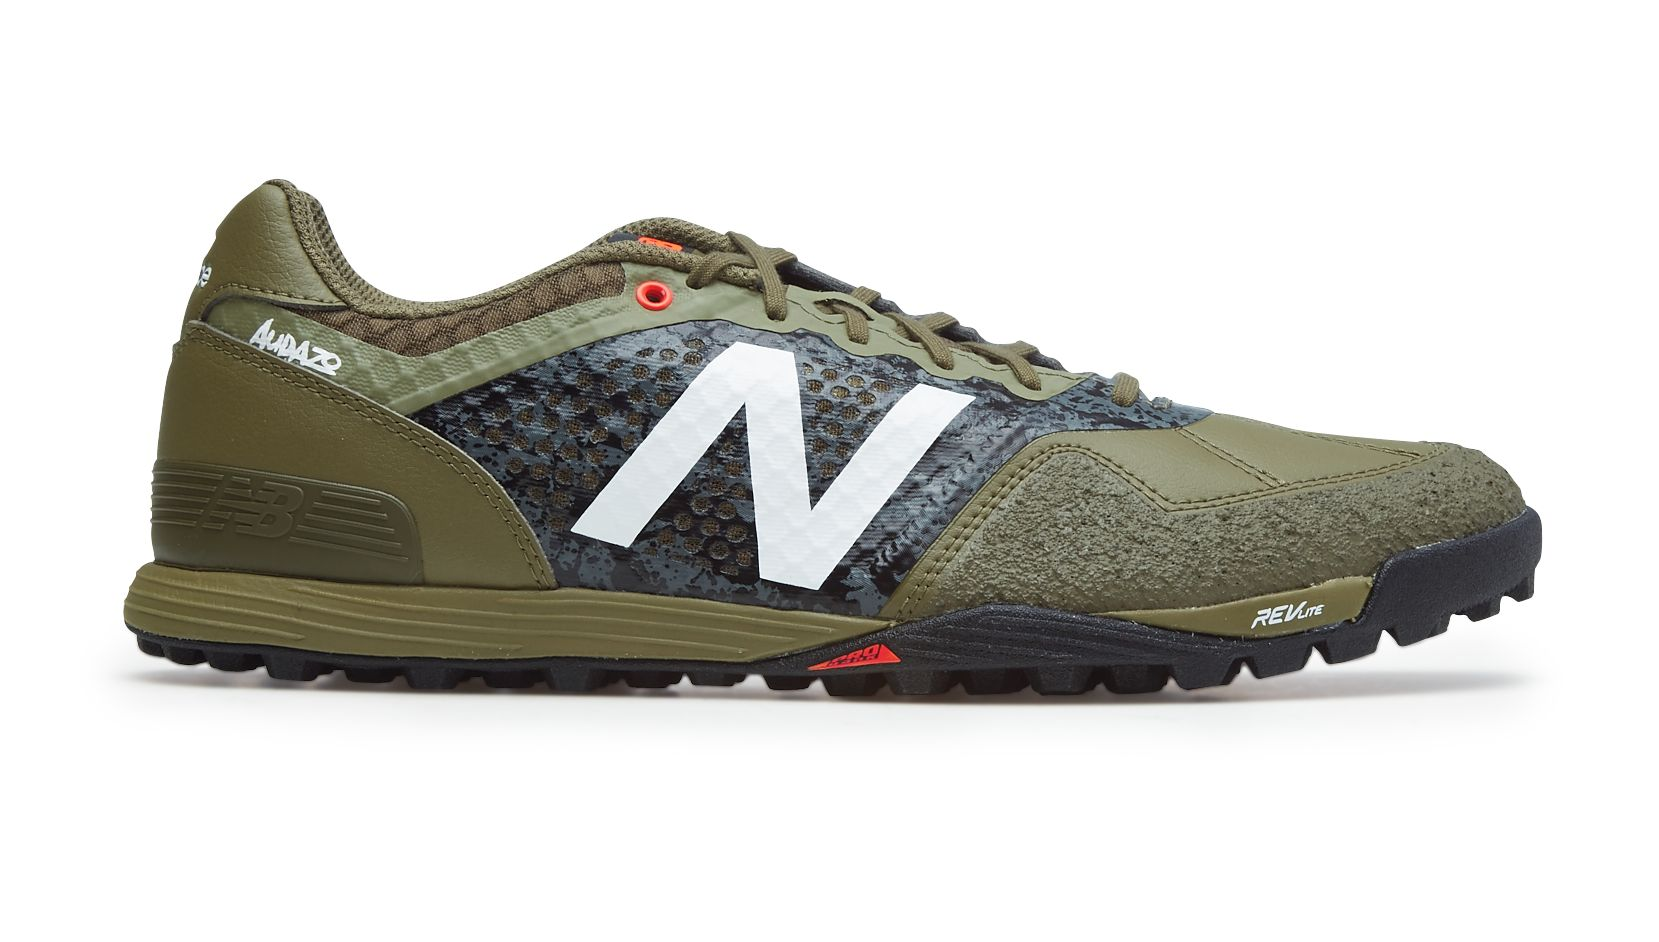 New Balance Audazo Pro TF, Triumph Green with Covert Green